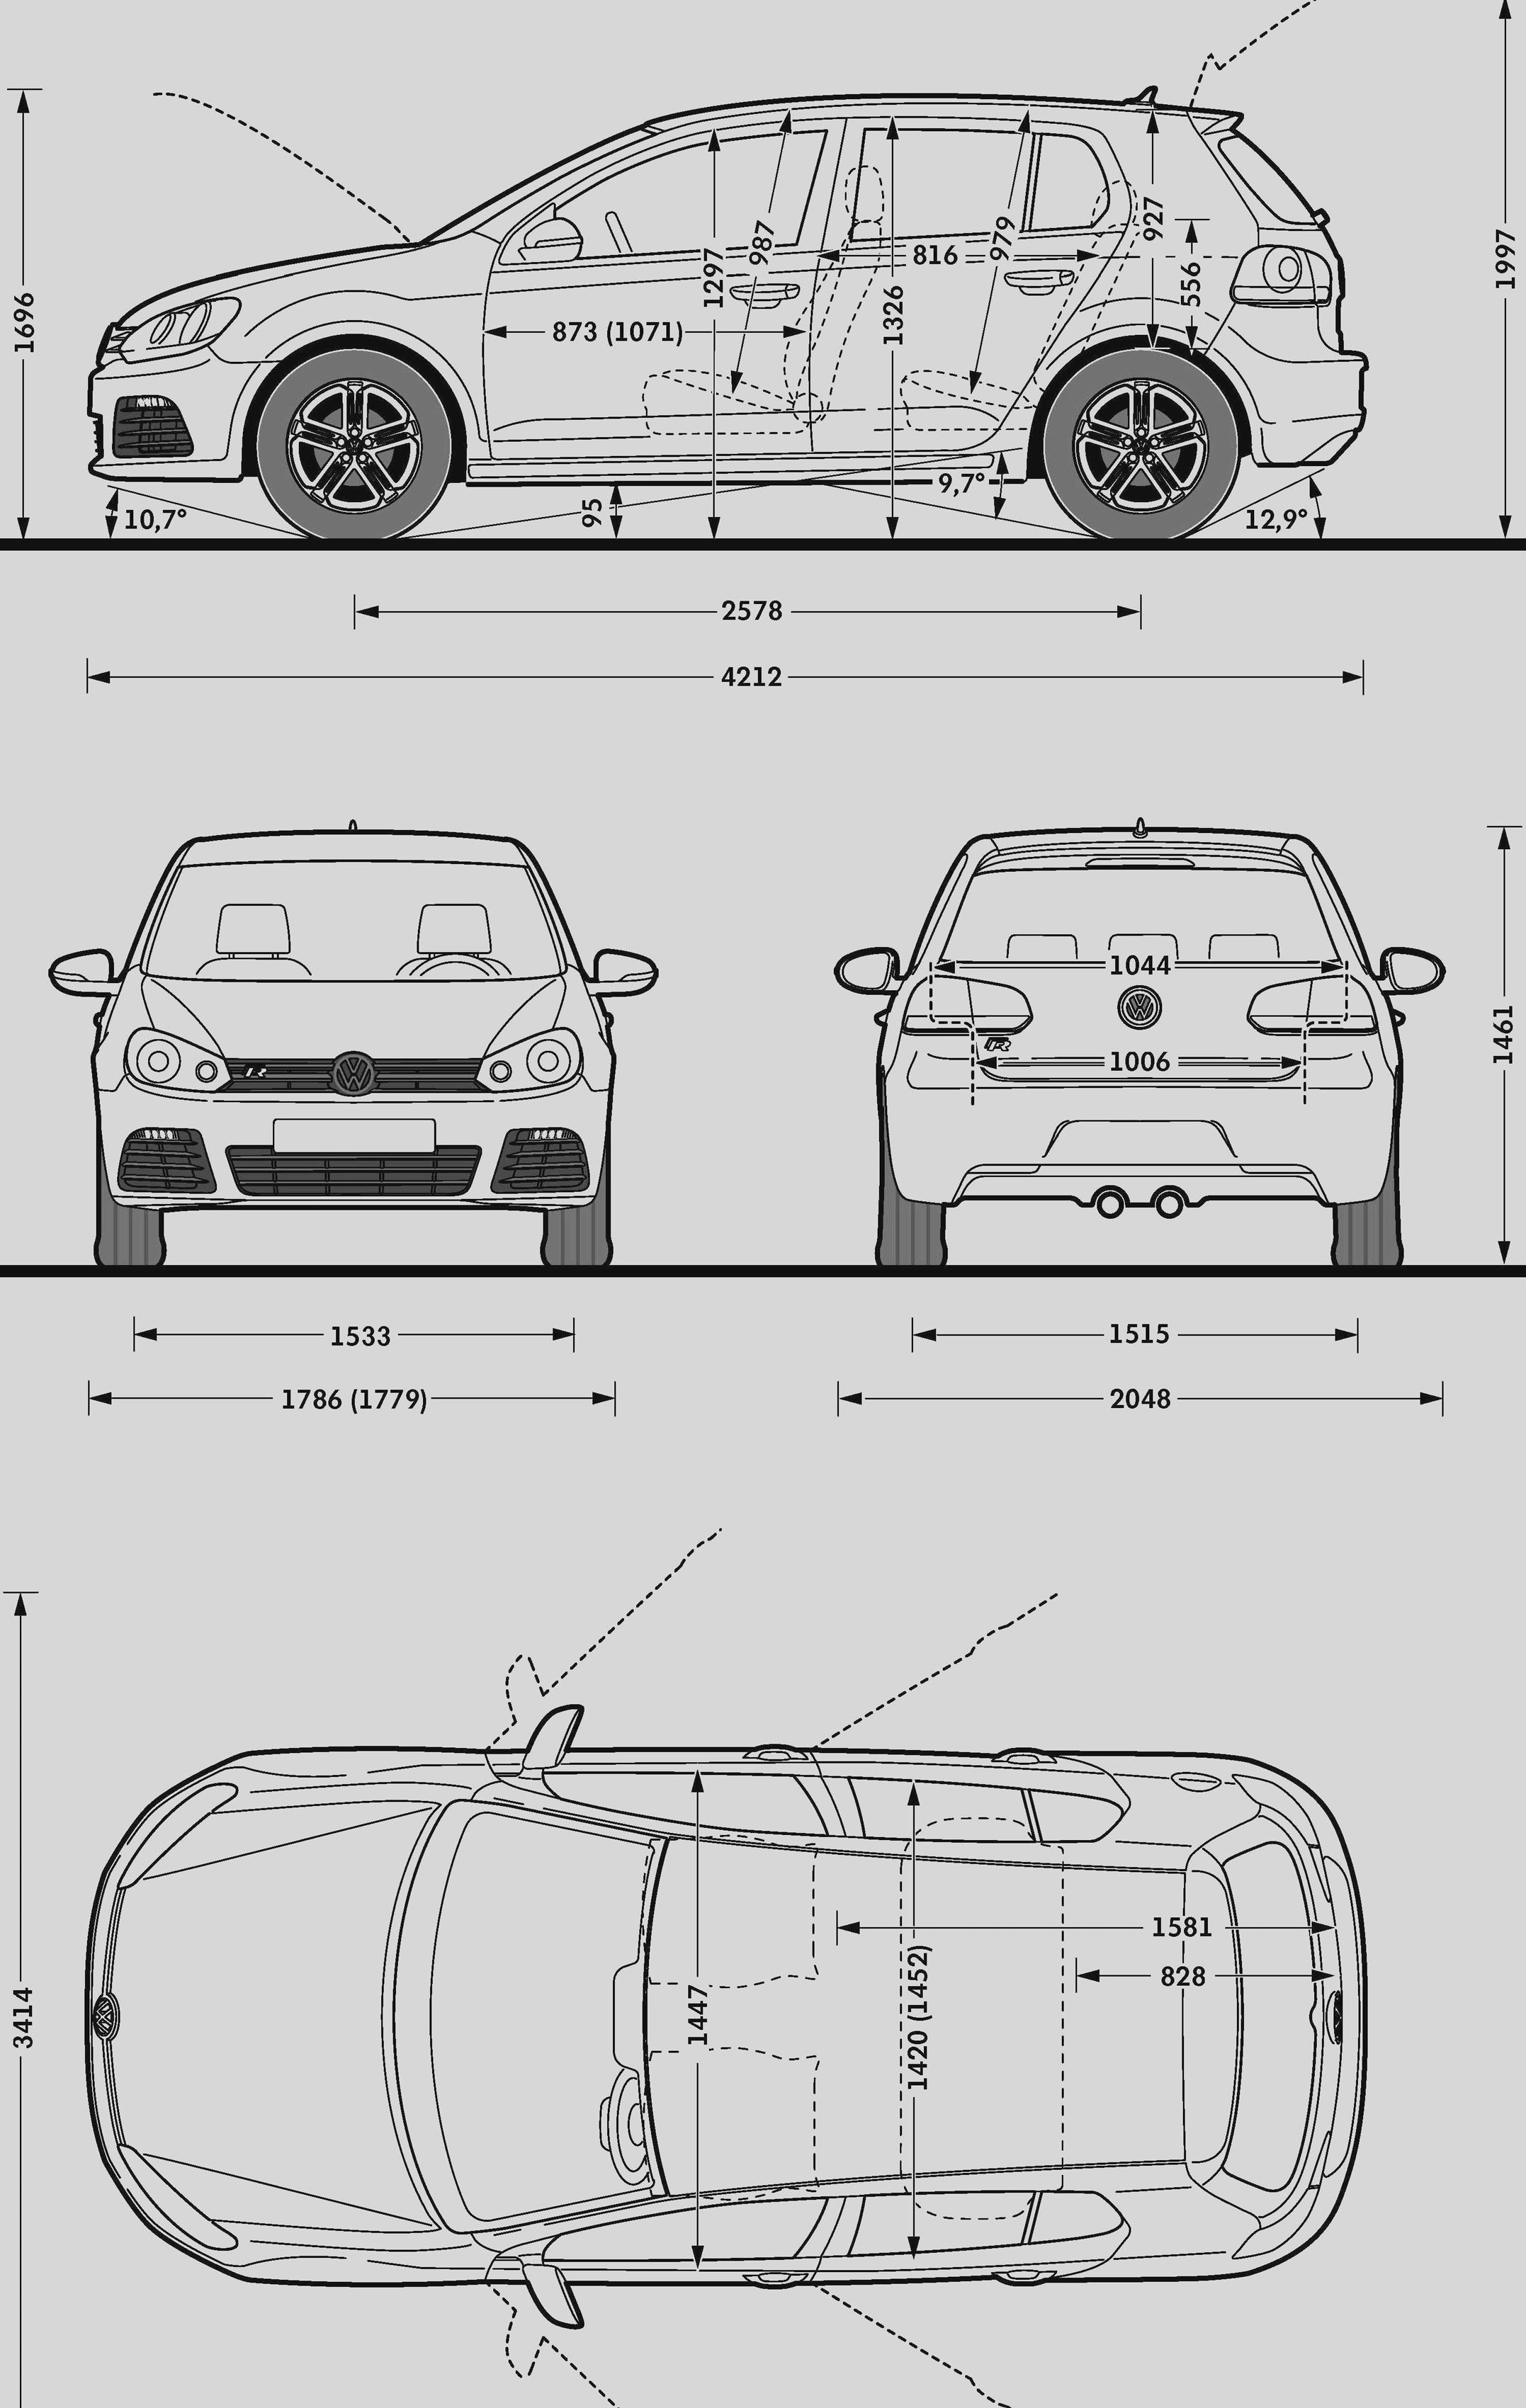 Brake Diagram Car Pin by Zé Rampim On Model Sheet Blue Print Pinterest Of Brake Diagram Car